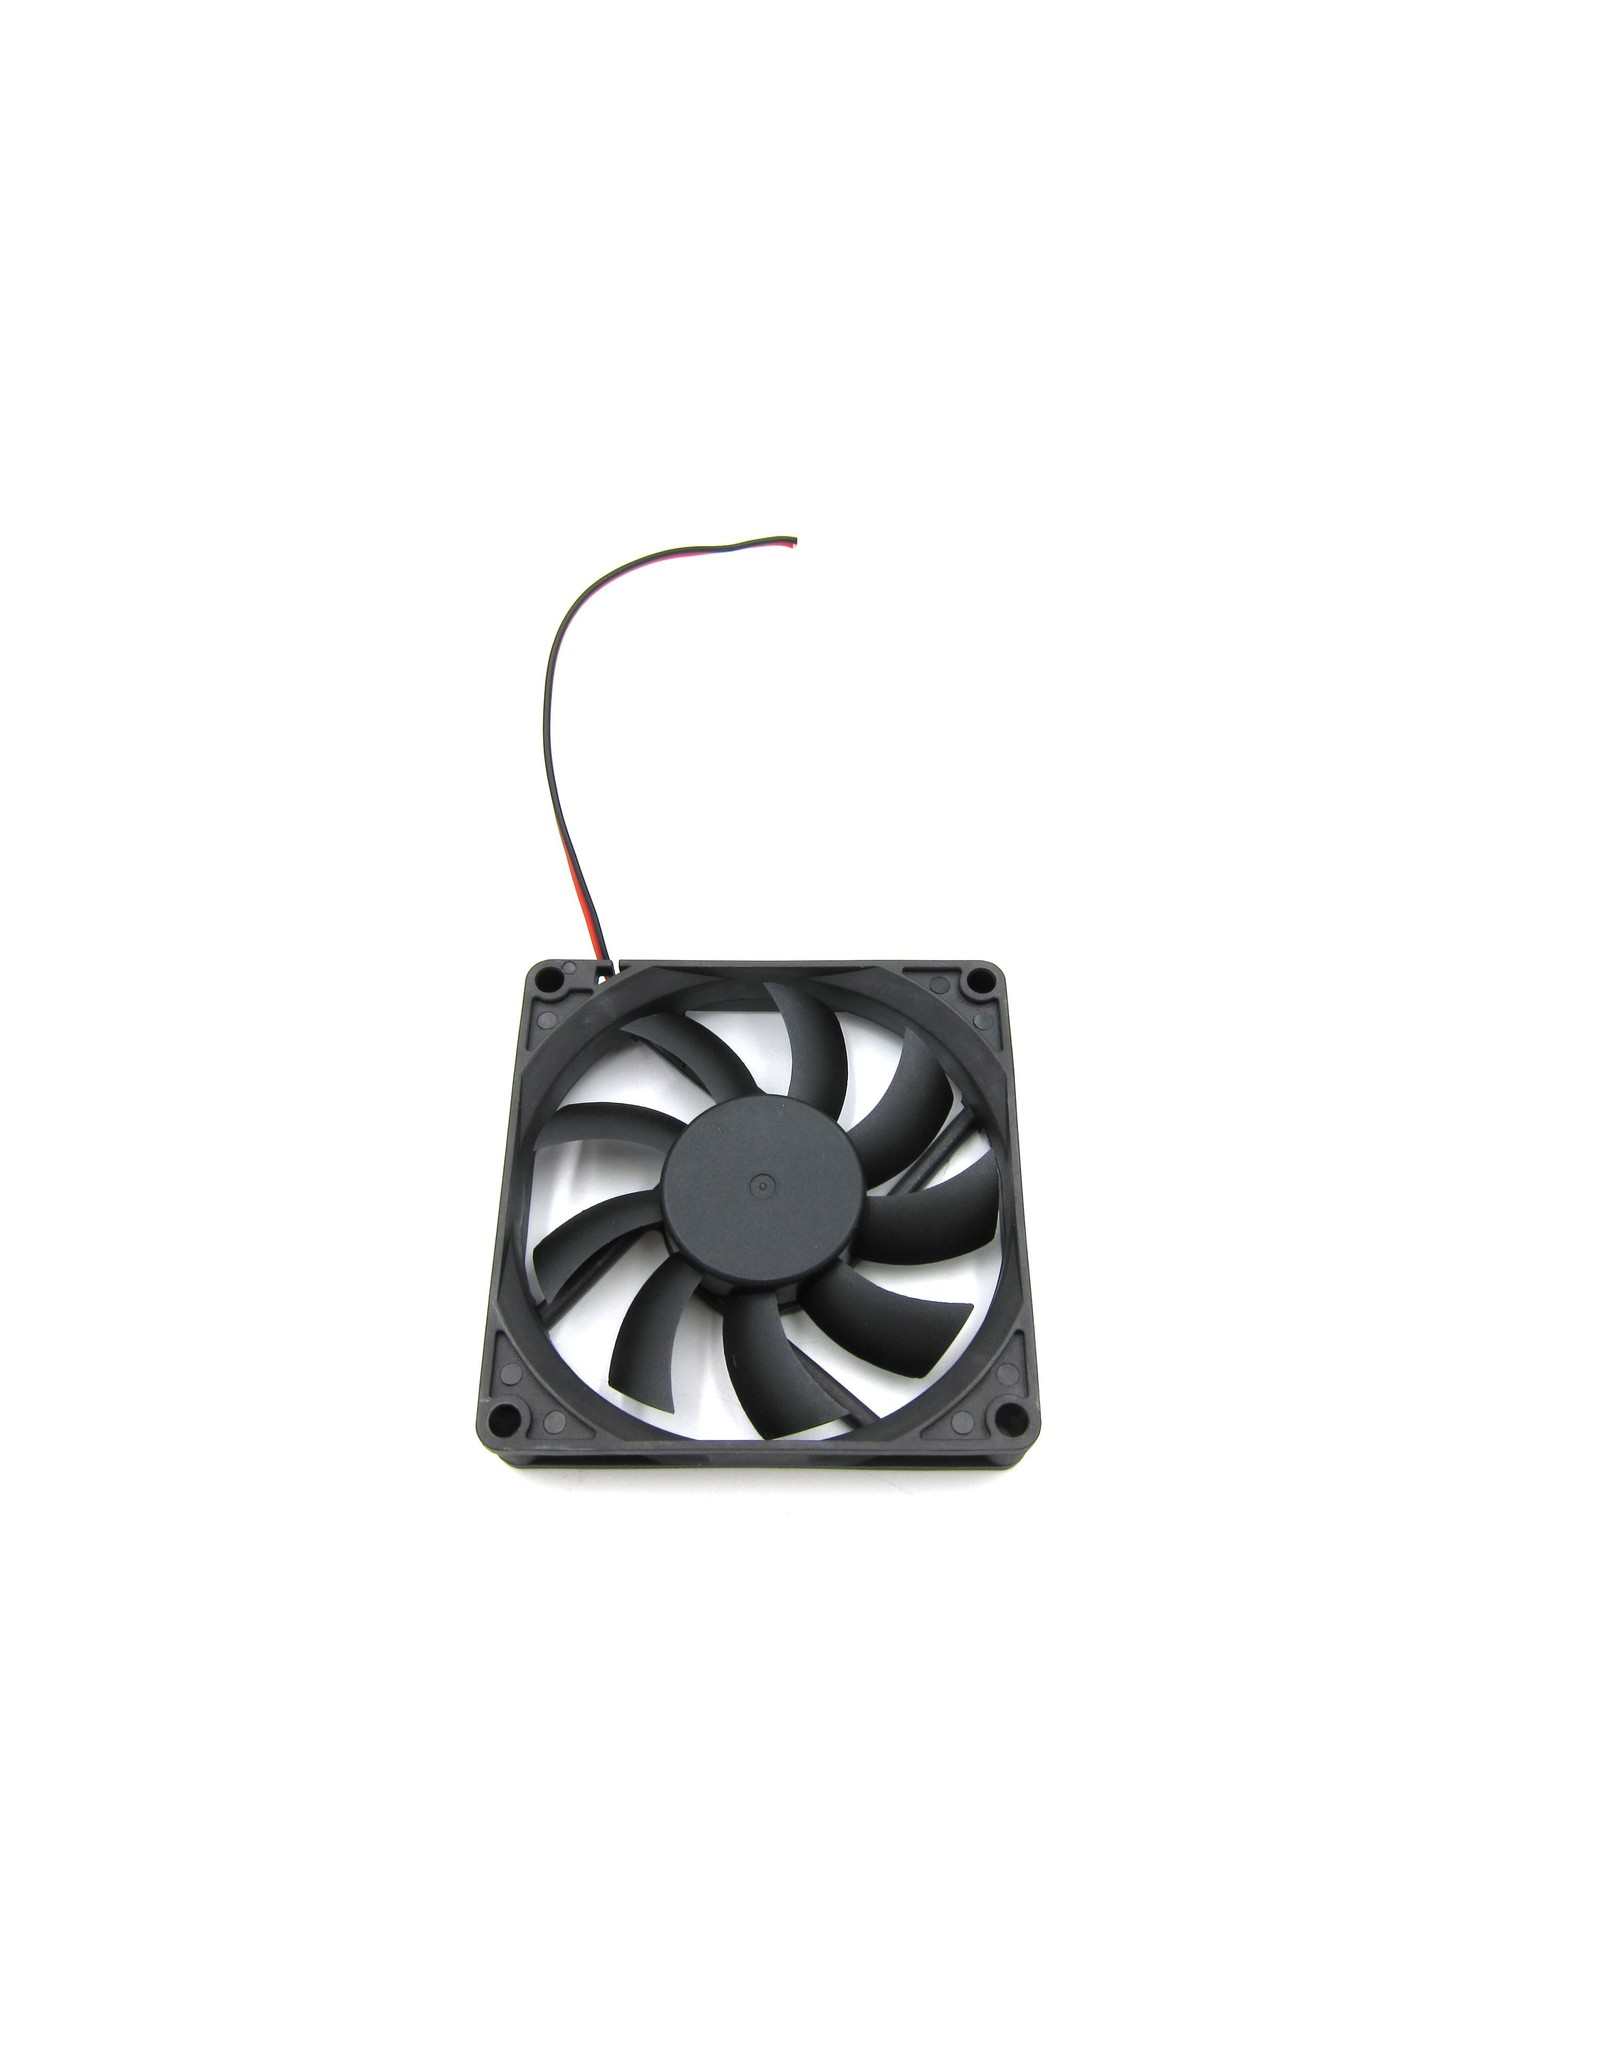 Anycubic Anycubic Photon S UV-Lamp Cooling Fan